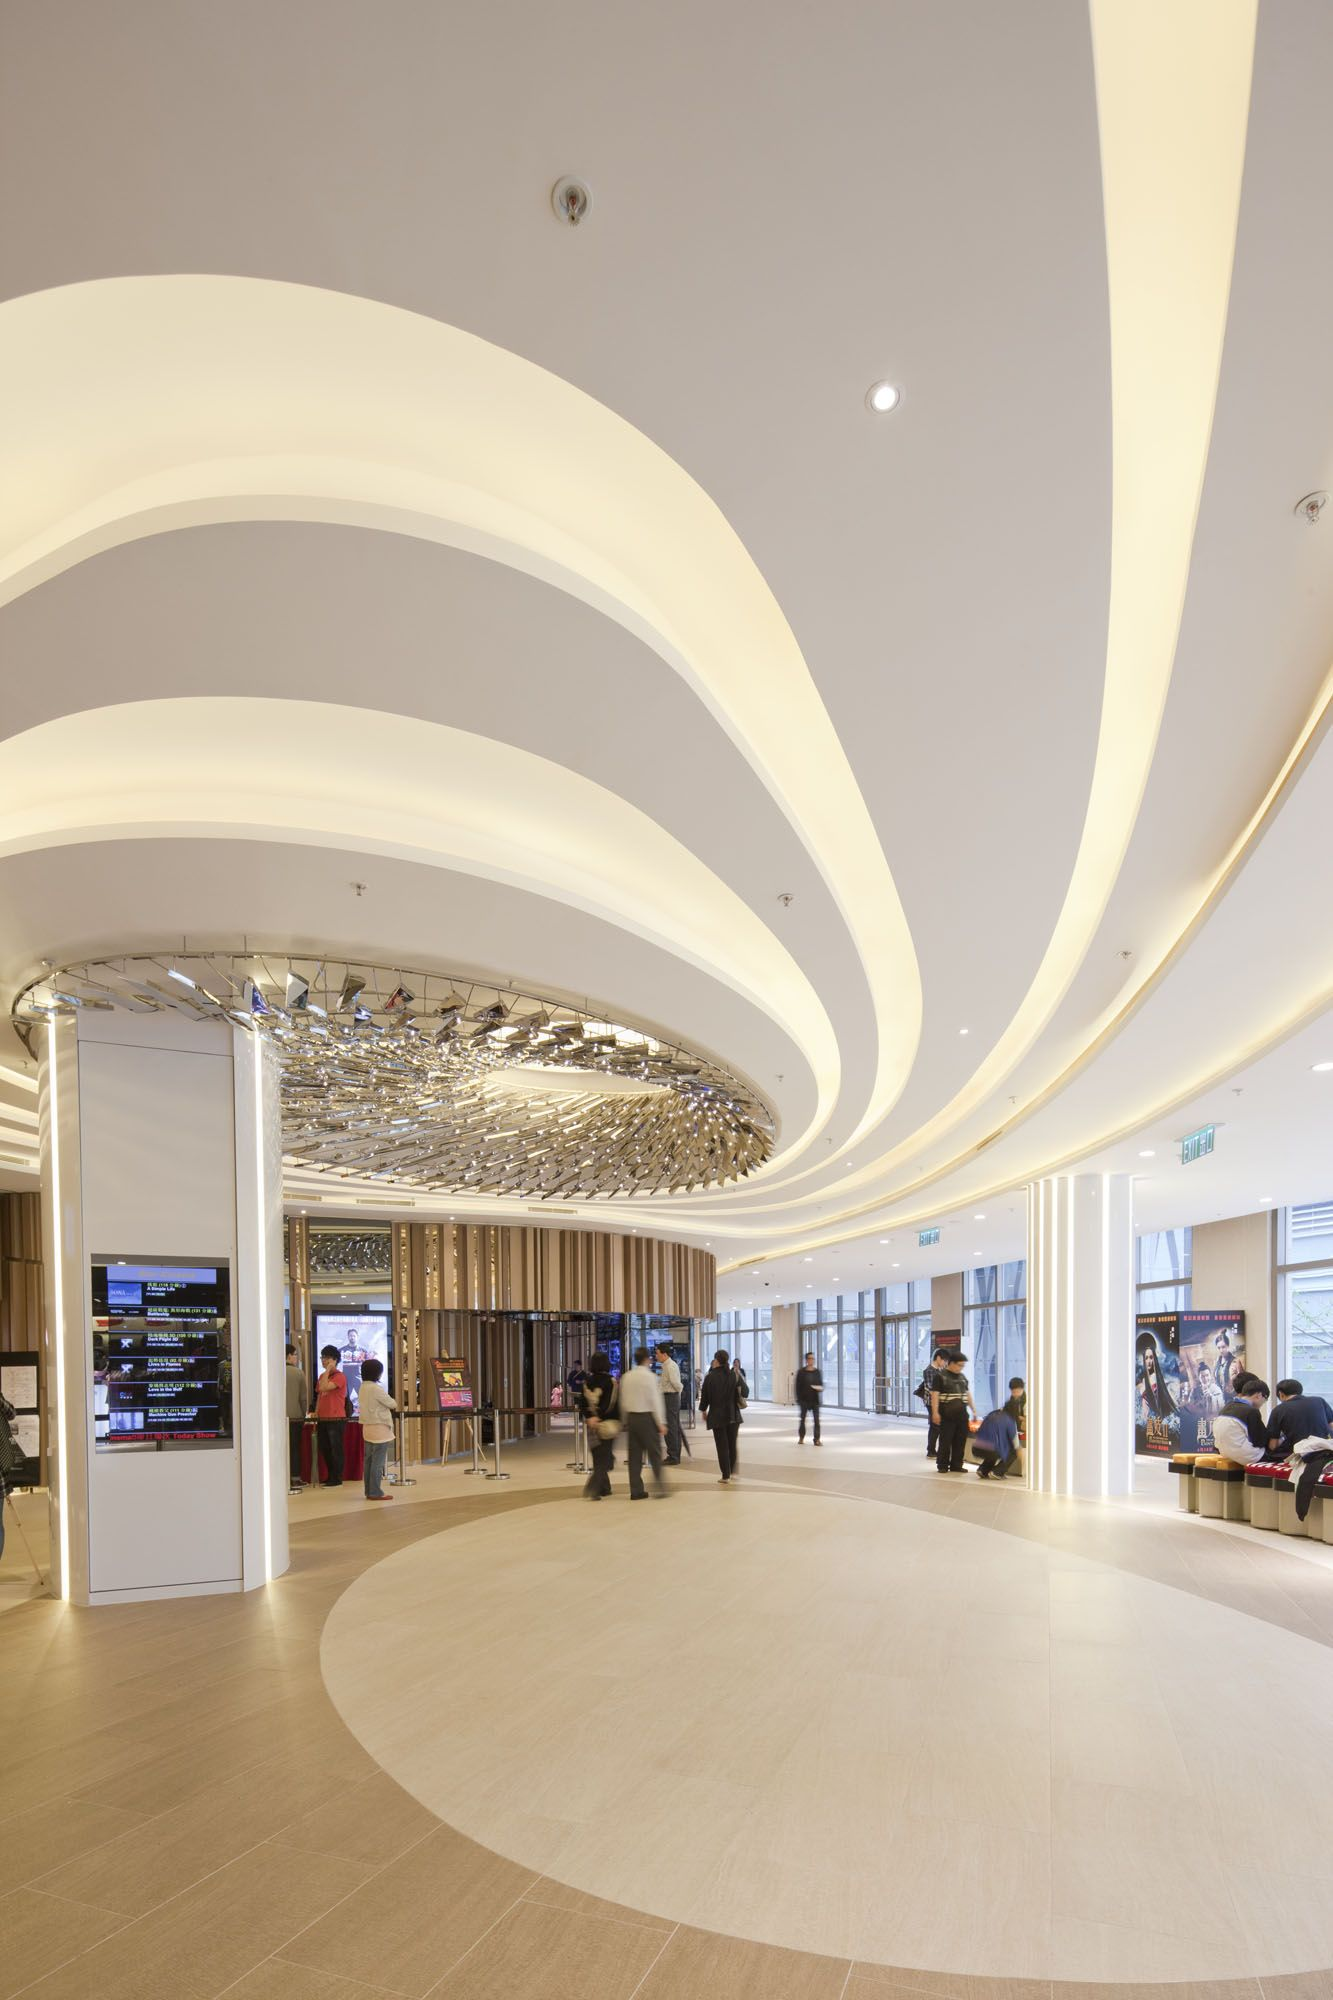 Star Cinema, PopCorn / Location: Hong Kong / By AGC Design